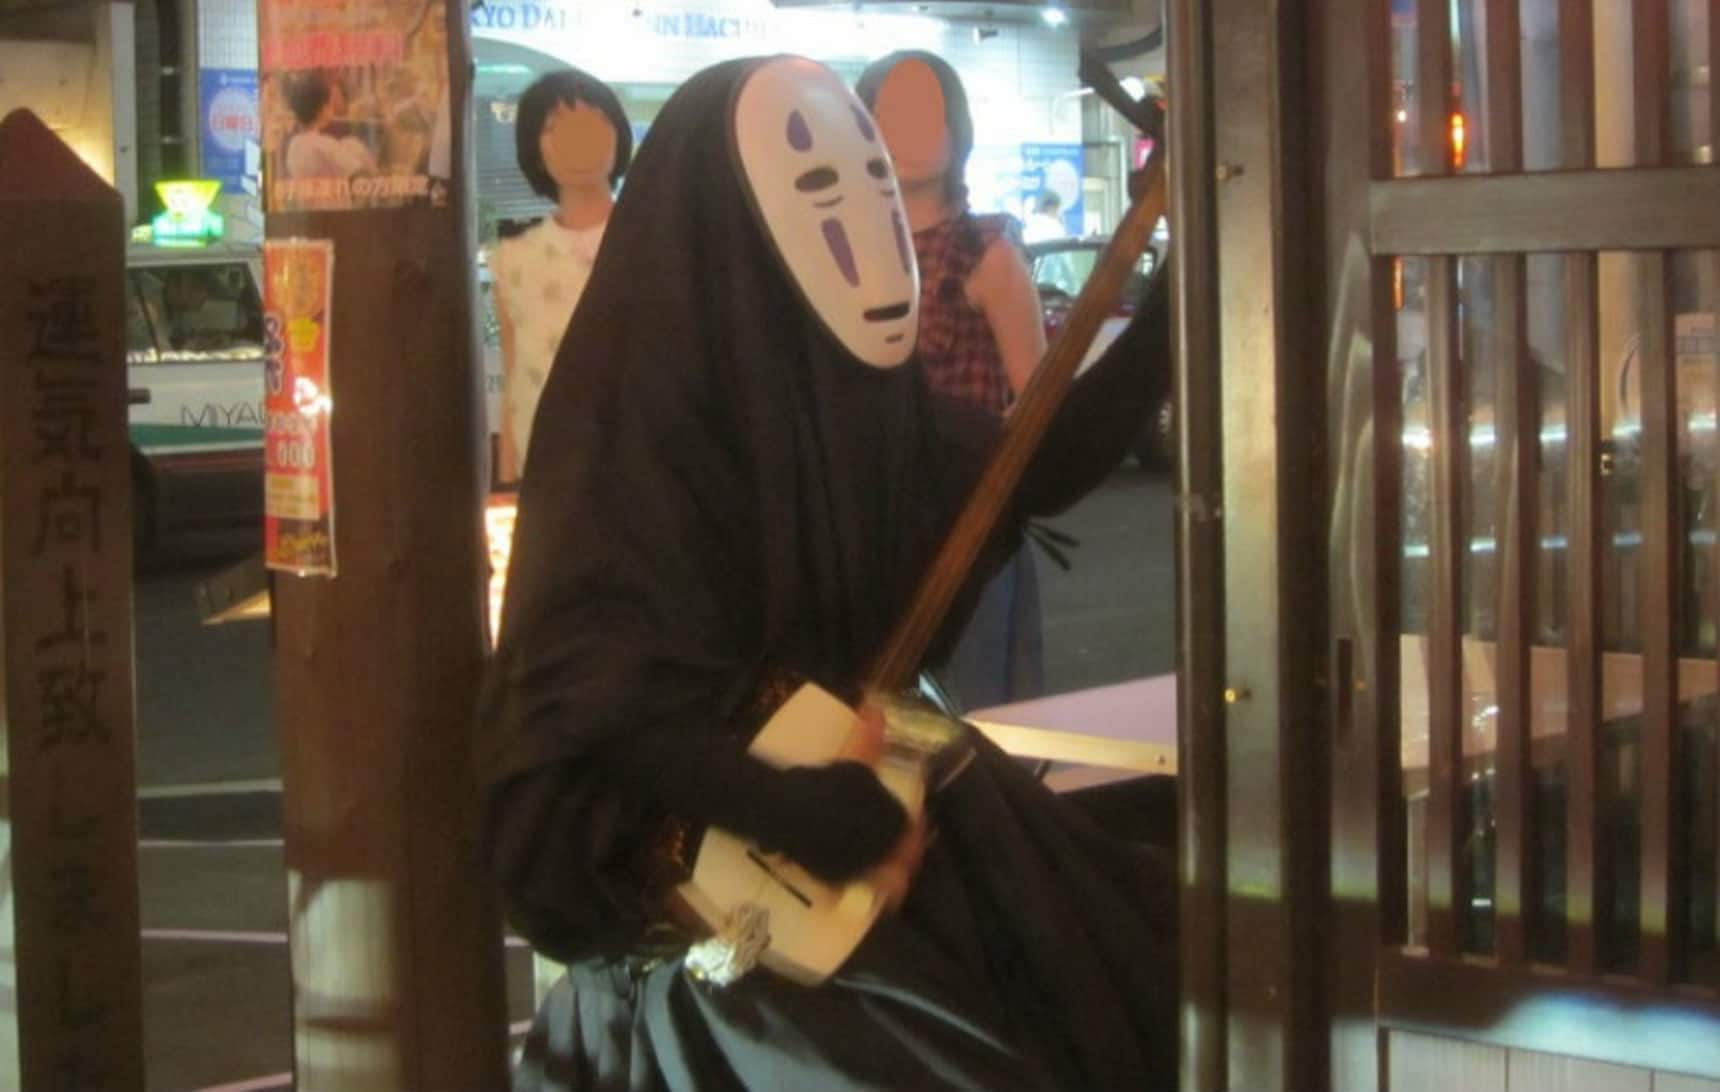 This No-Face will Pluck at Your Heart Strings